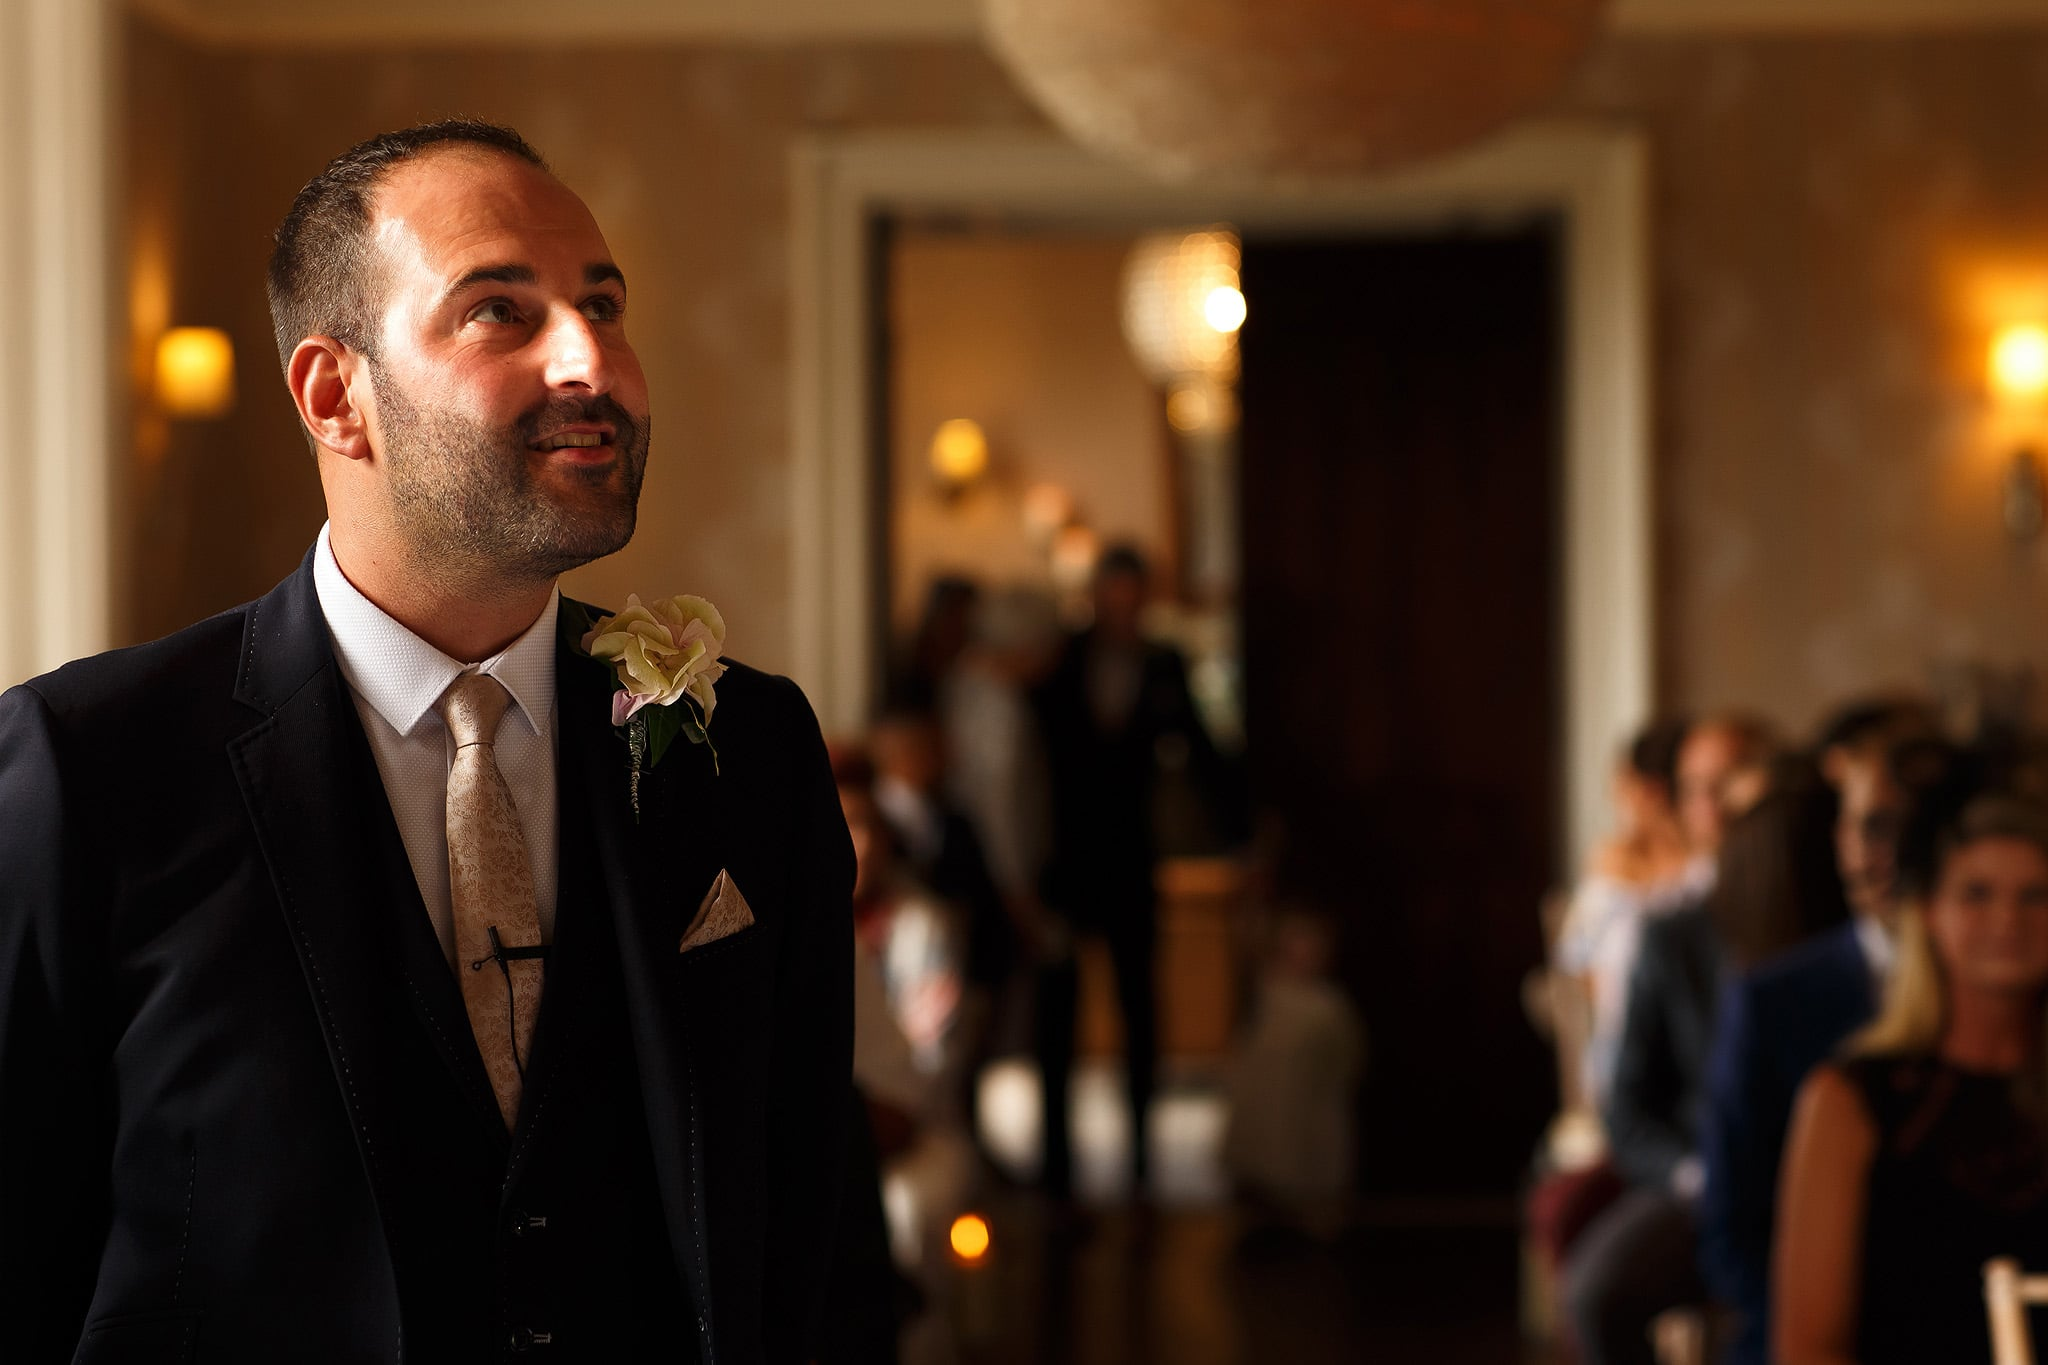 Nervous groom waiting at the top of the aisle in ceremony room at falcon manor